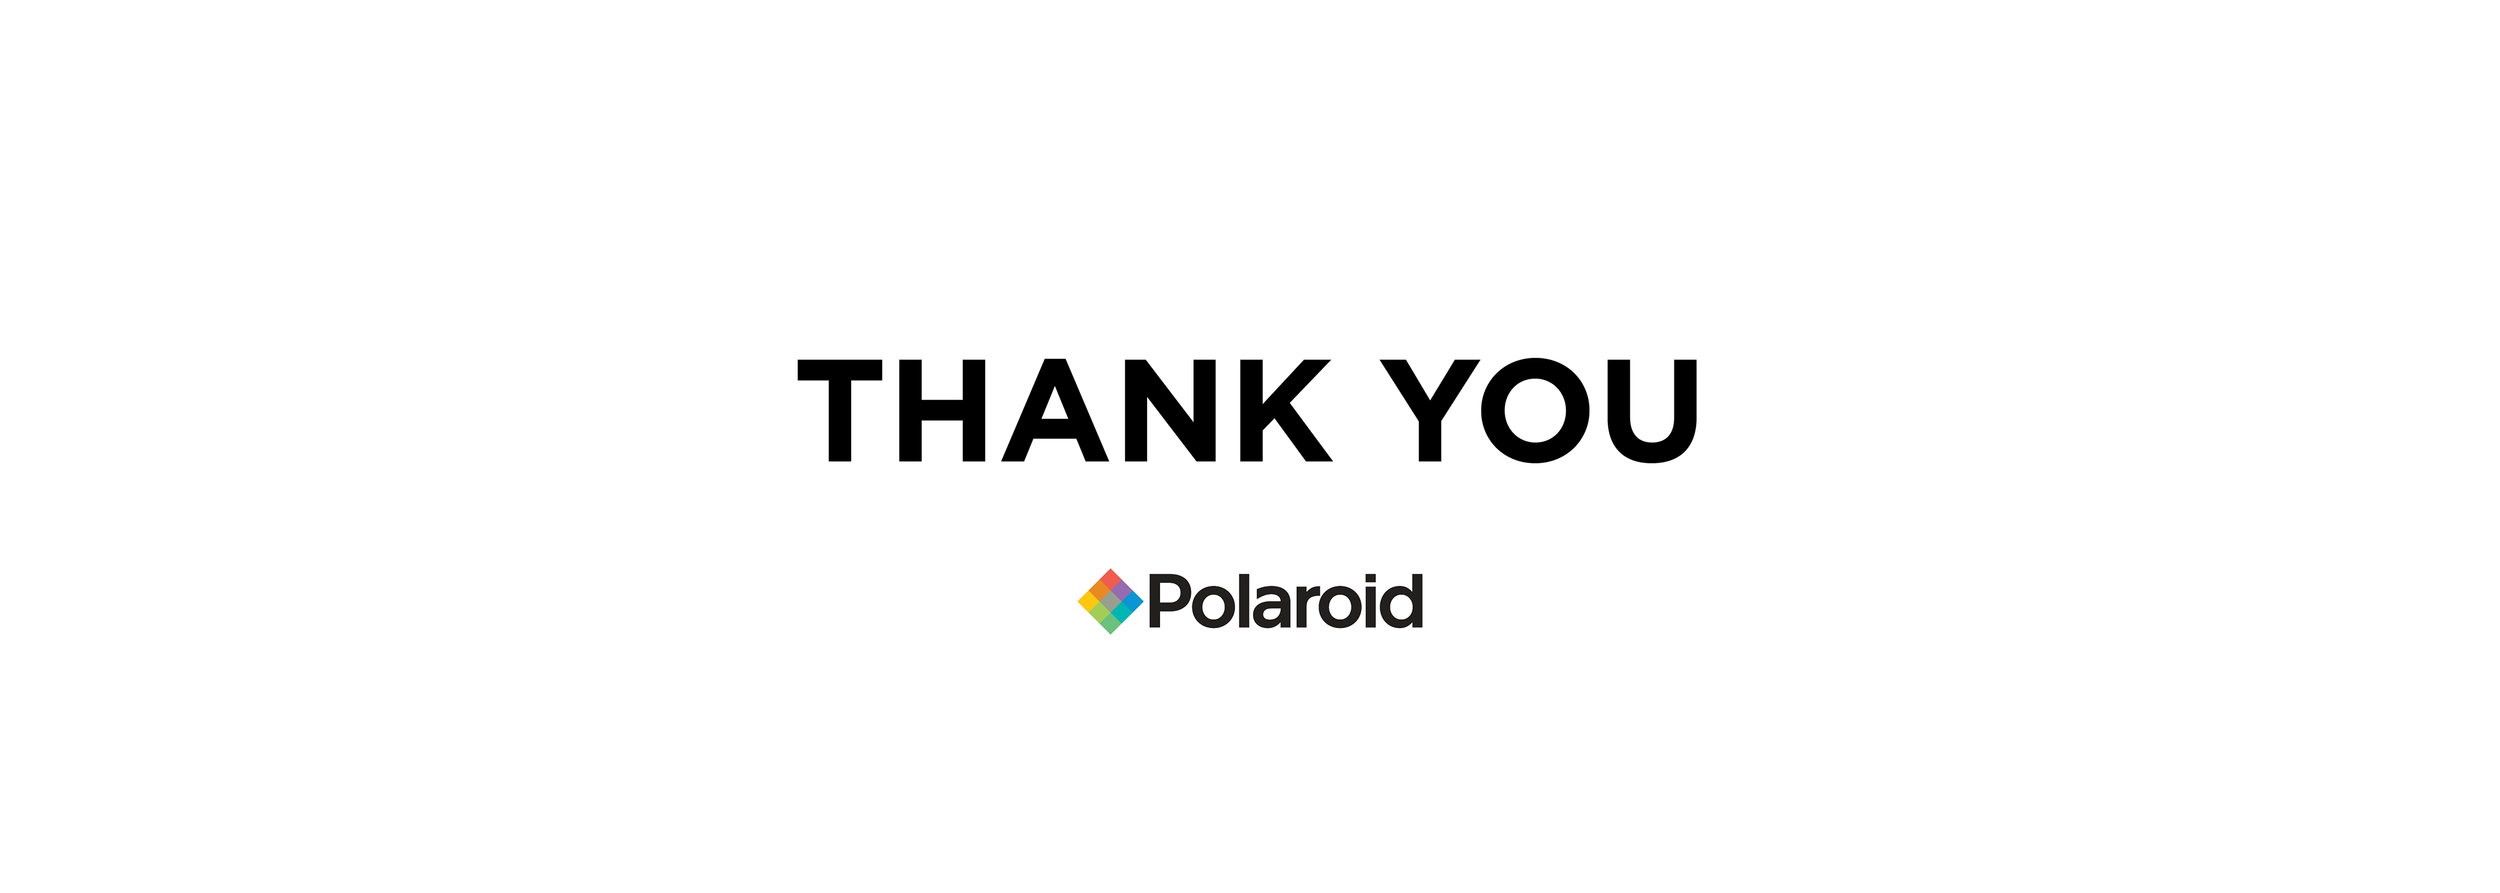 polaroid_behance2.png